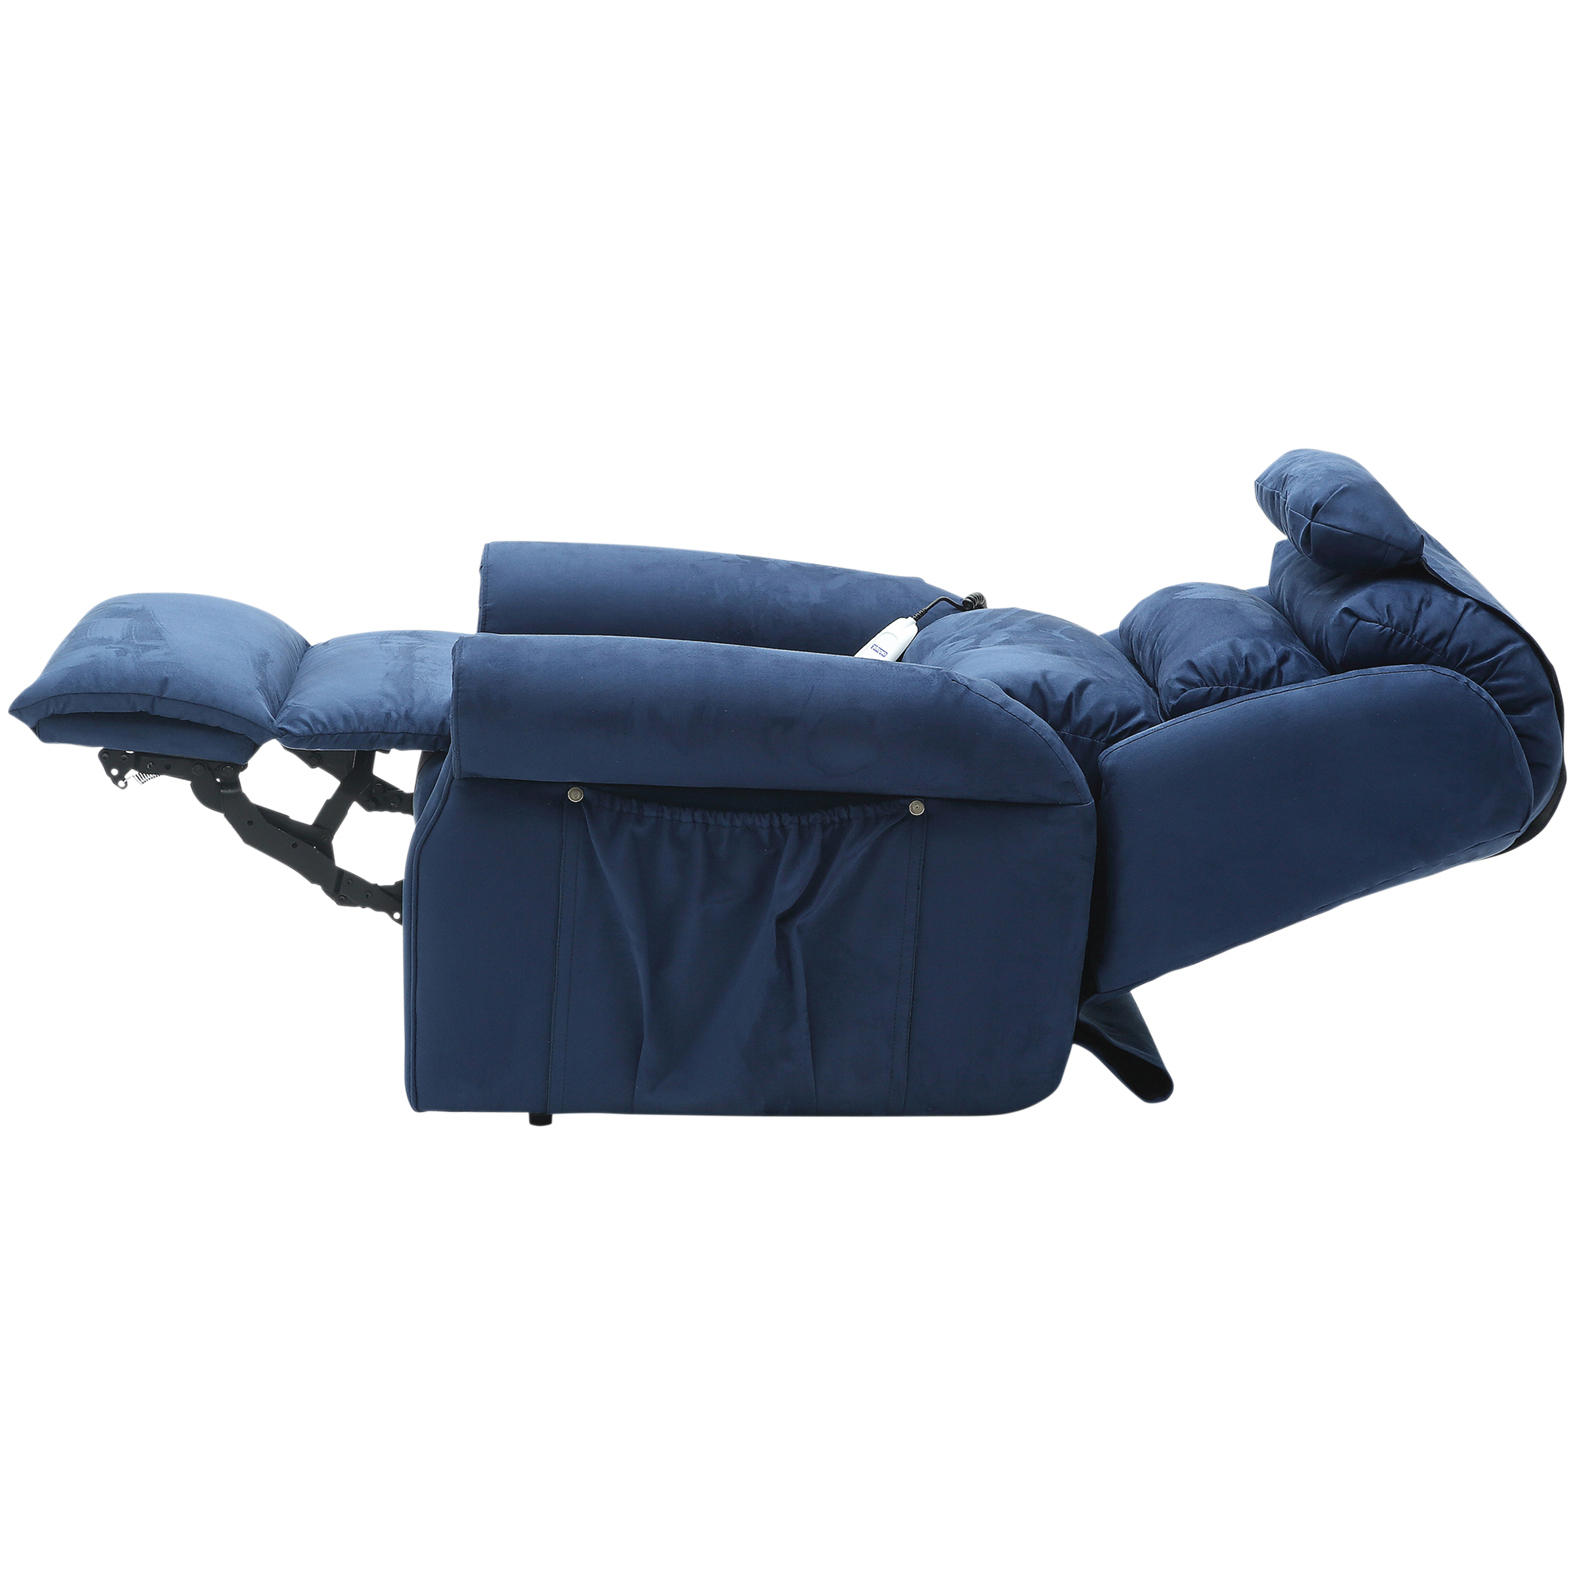 Details about Sandfield Dual Motor Fabric Riser Recliner Chair 160kg Weight Capacity